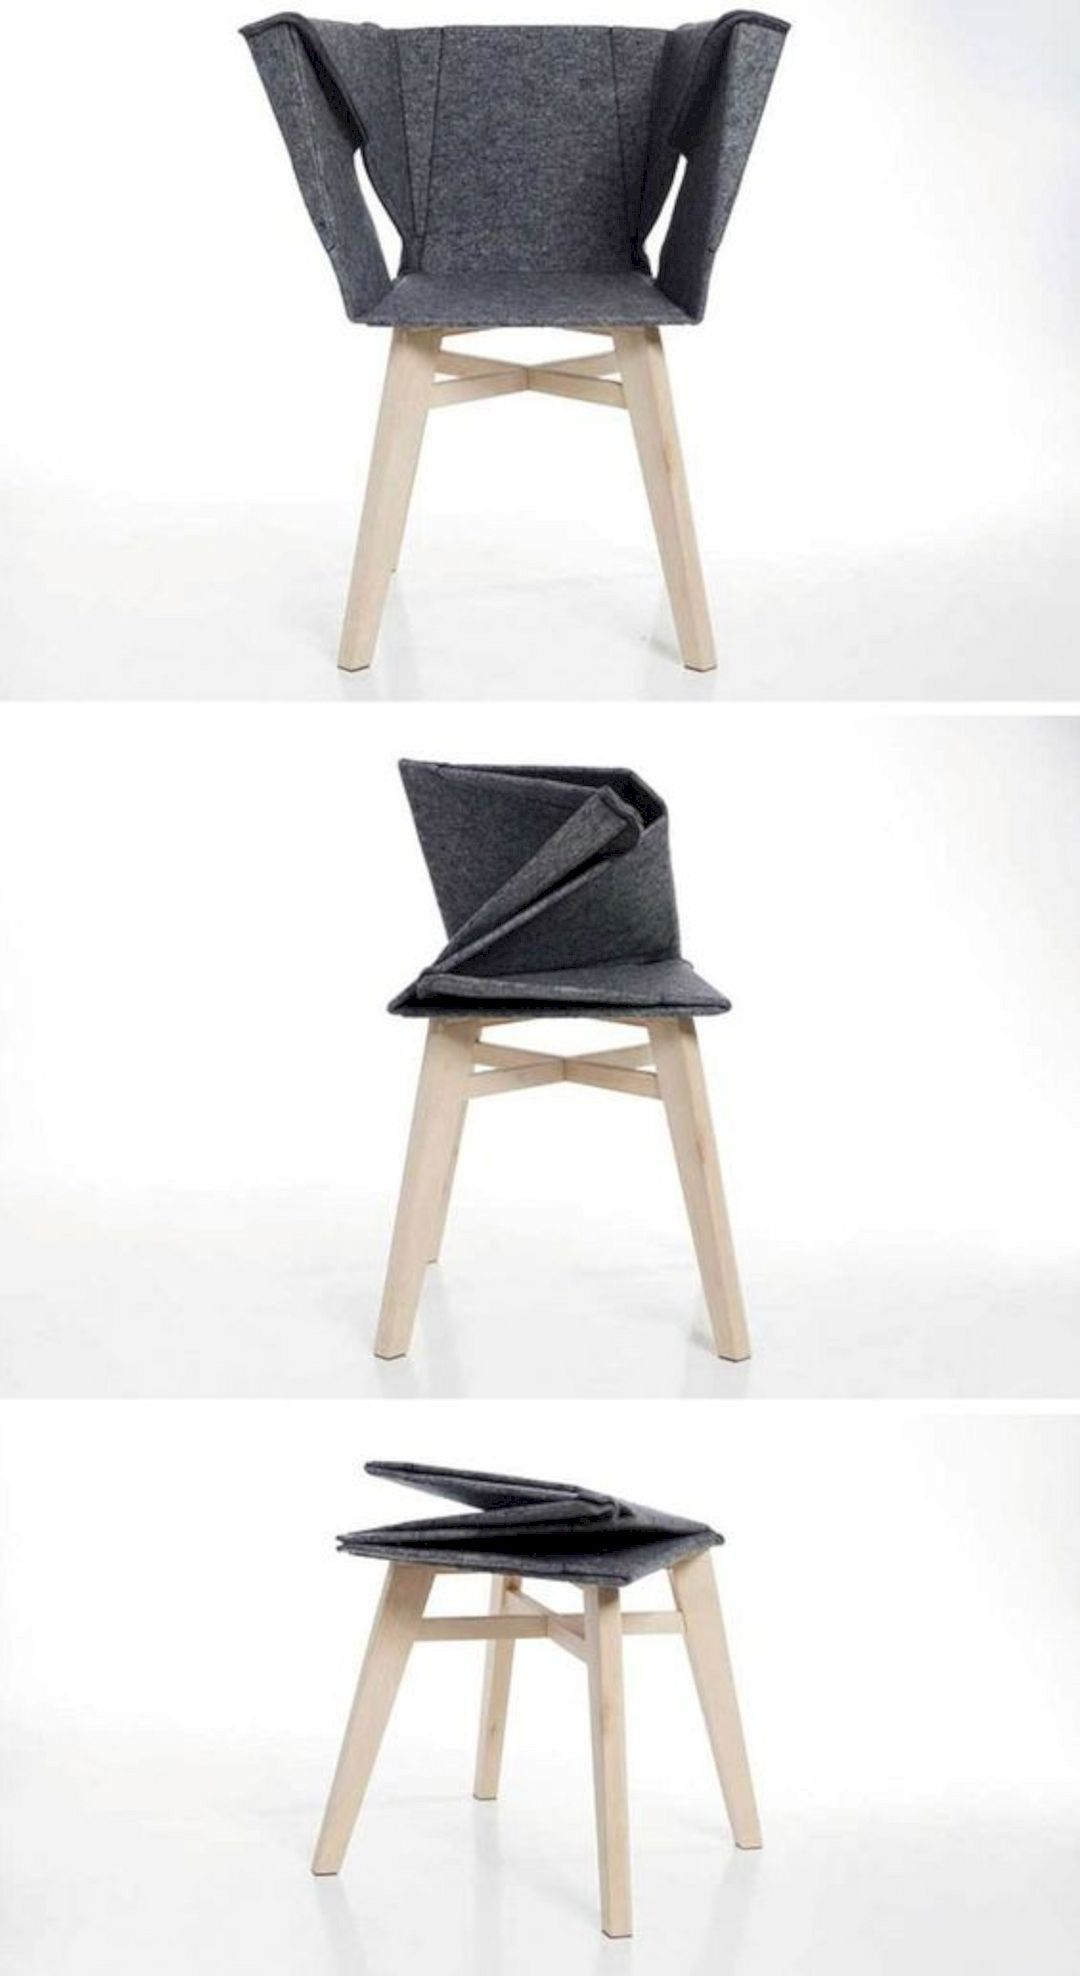 16 clever folding chair designs folding chairs living room 16 clever folding chair designs foldable chairsfolding chairsorigami jeuxipadfo Gallery